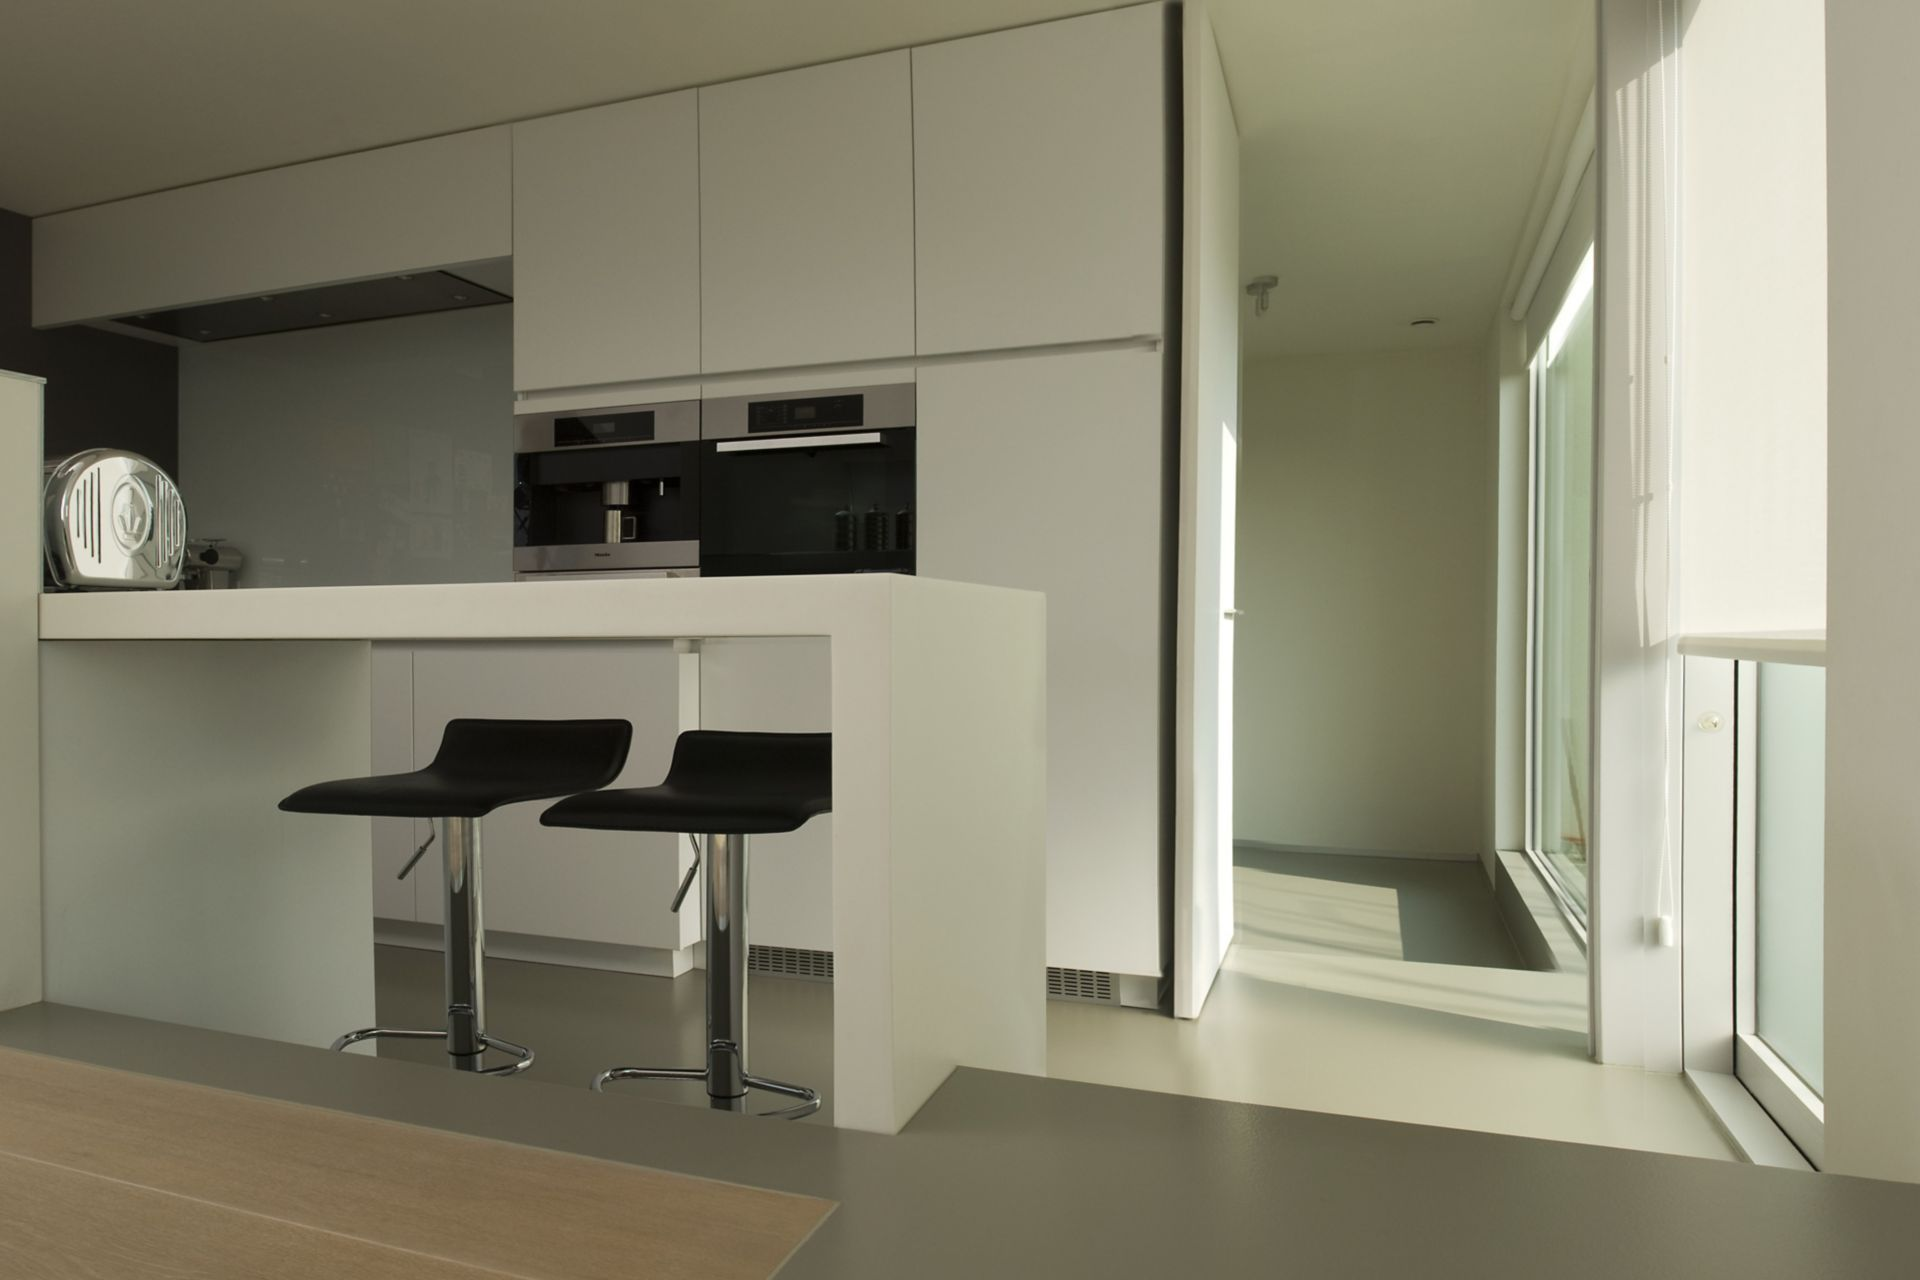 Sika ComfortFloor® grey floor in modern home kitchen with island